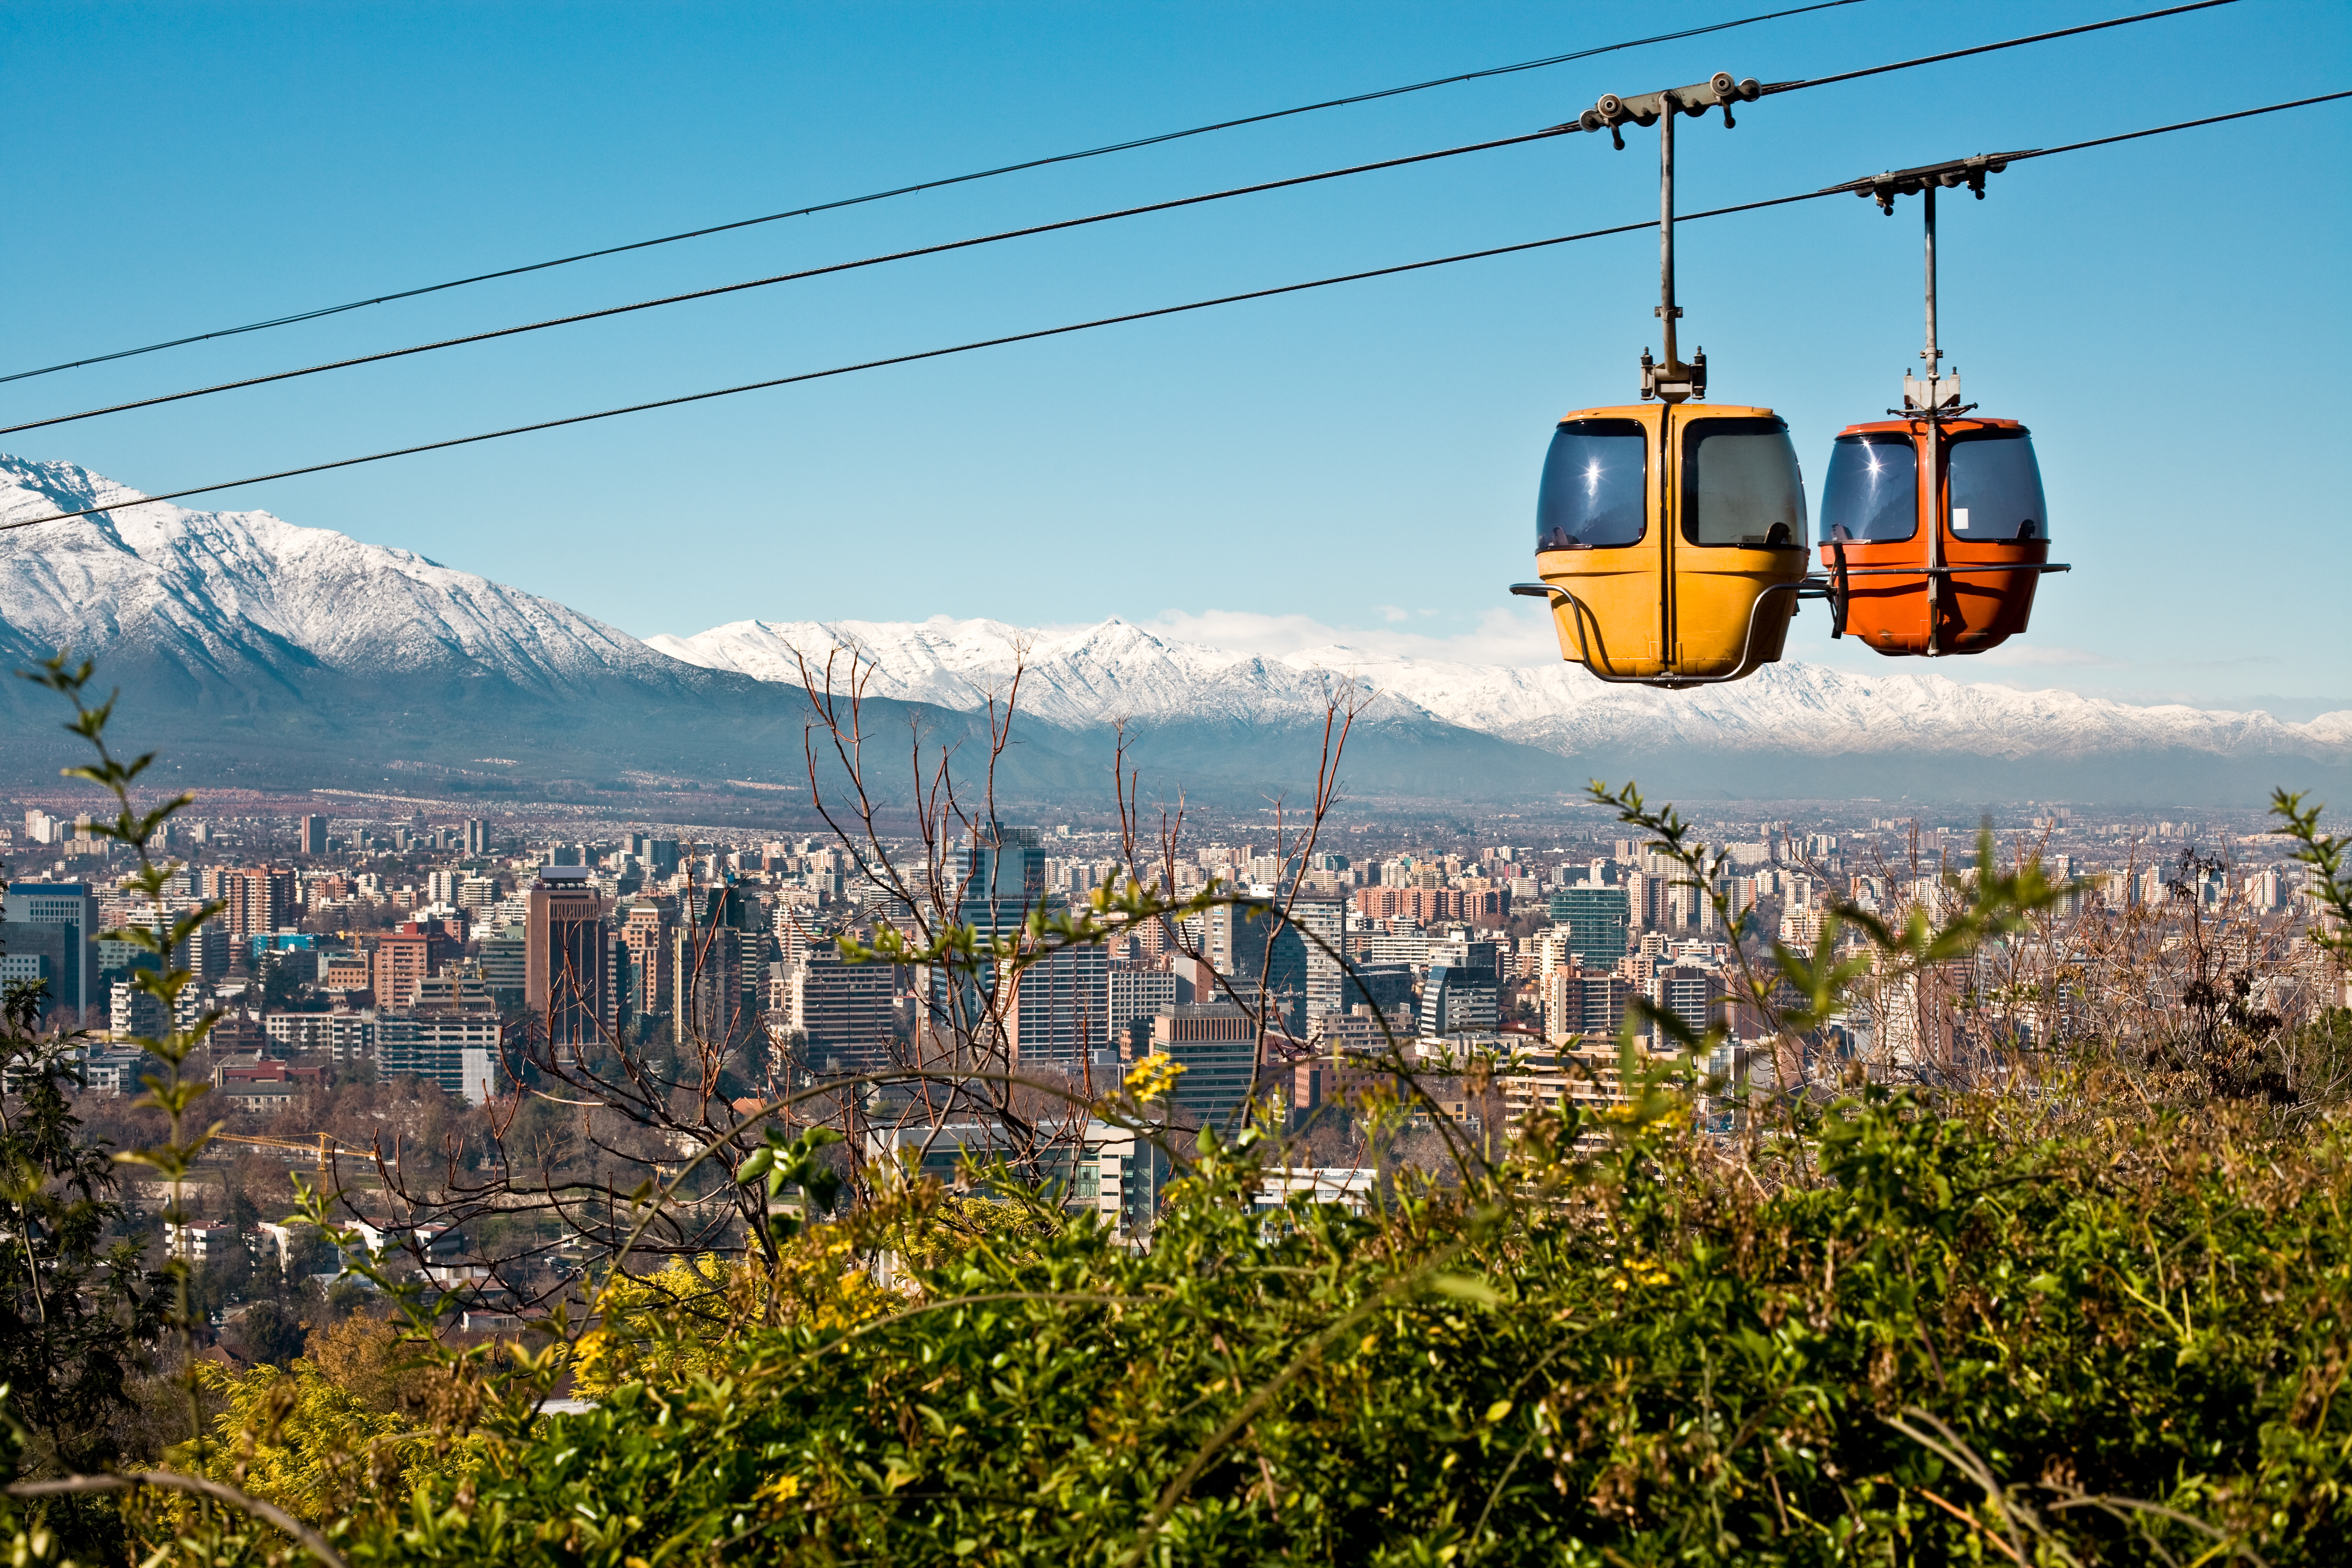 The urban cable car – an efficient means of transport